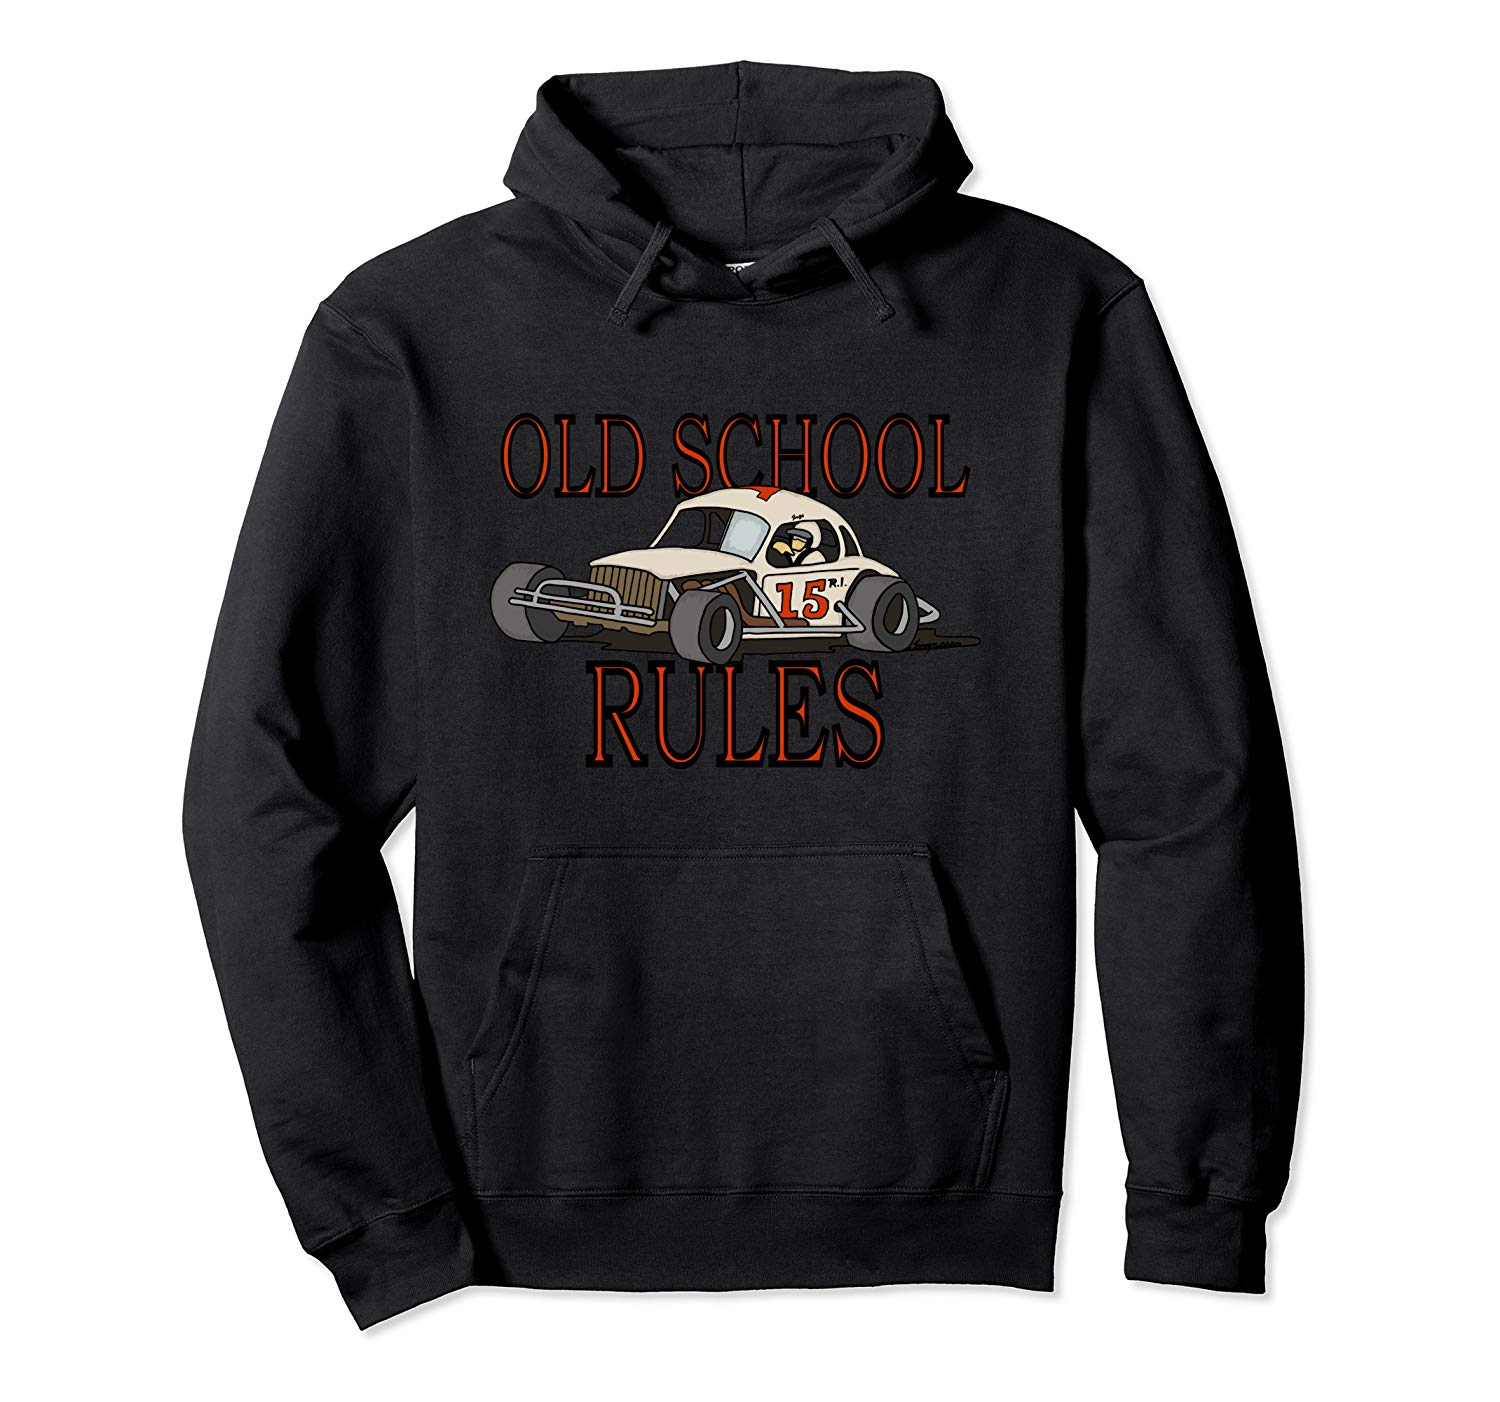 Stock Car Shirt OLD SCHOOL RULES White coupe racing gift hoodie